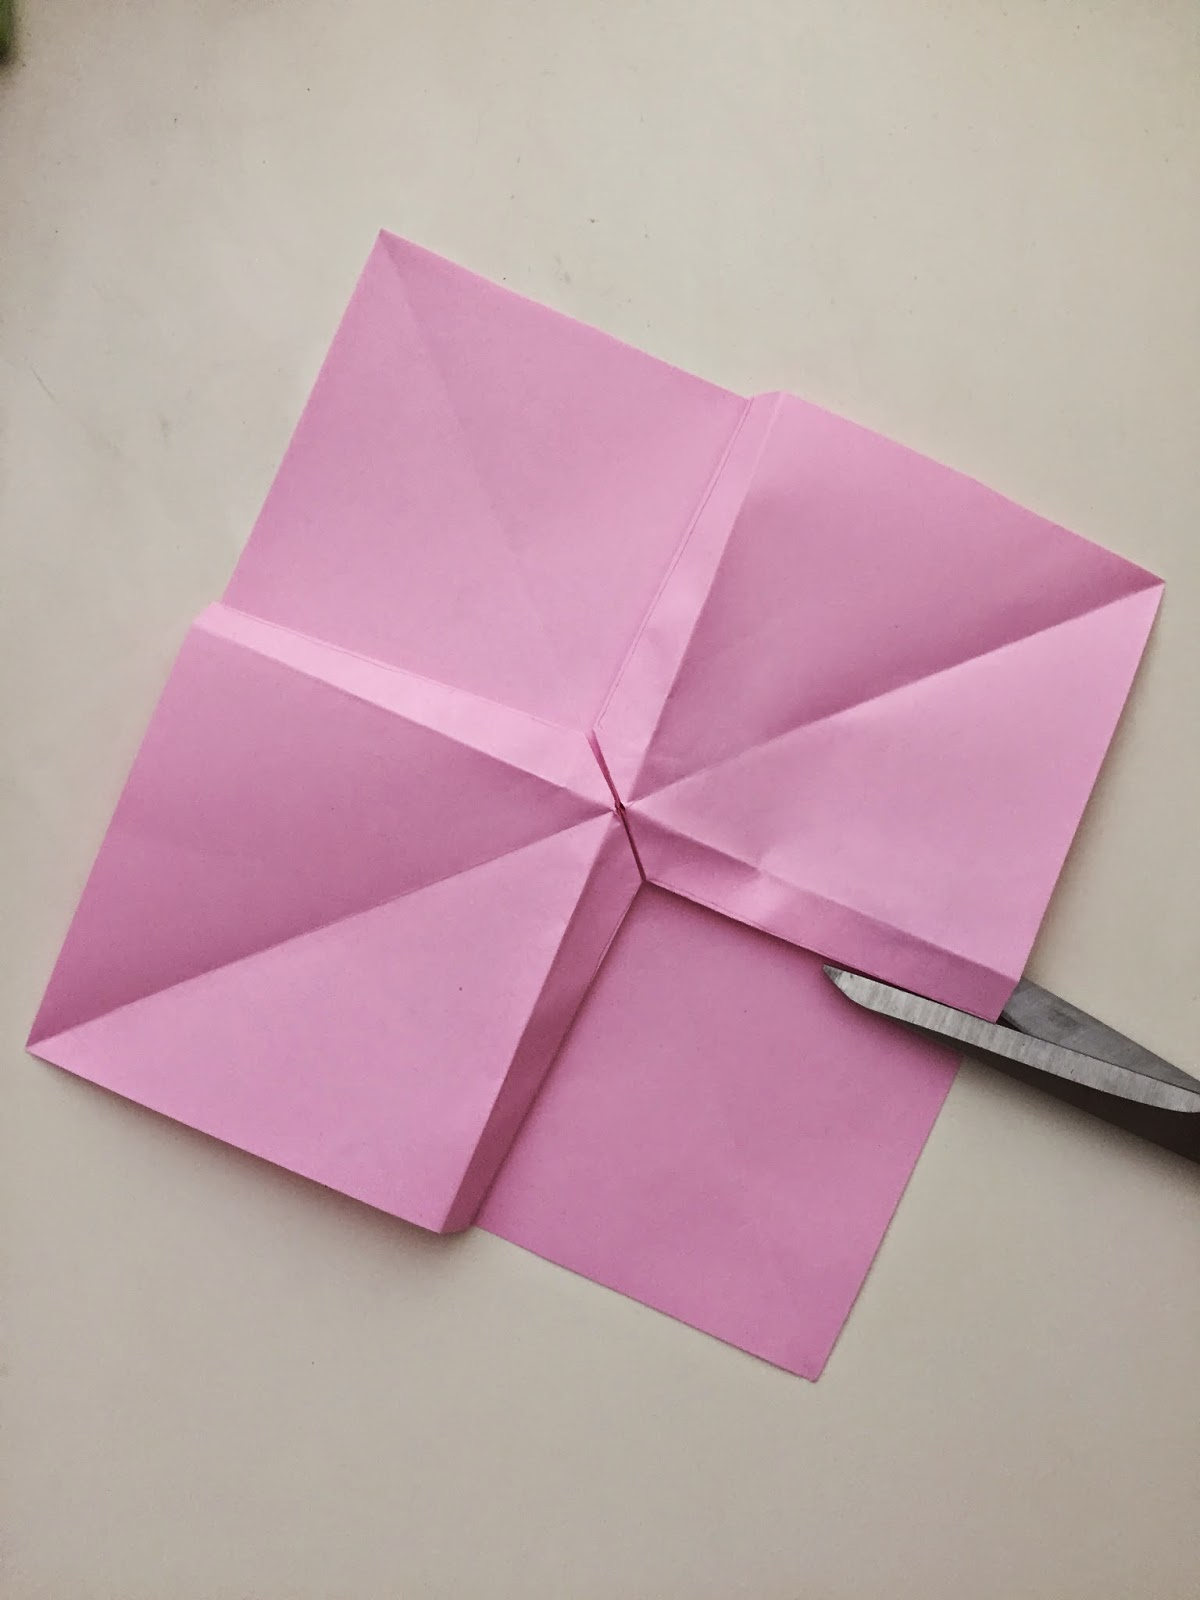 Fun Activities for Your Teenage Girl - DIY Paper Bows